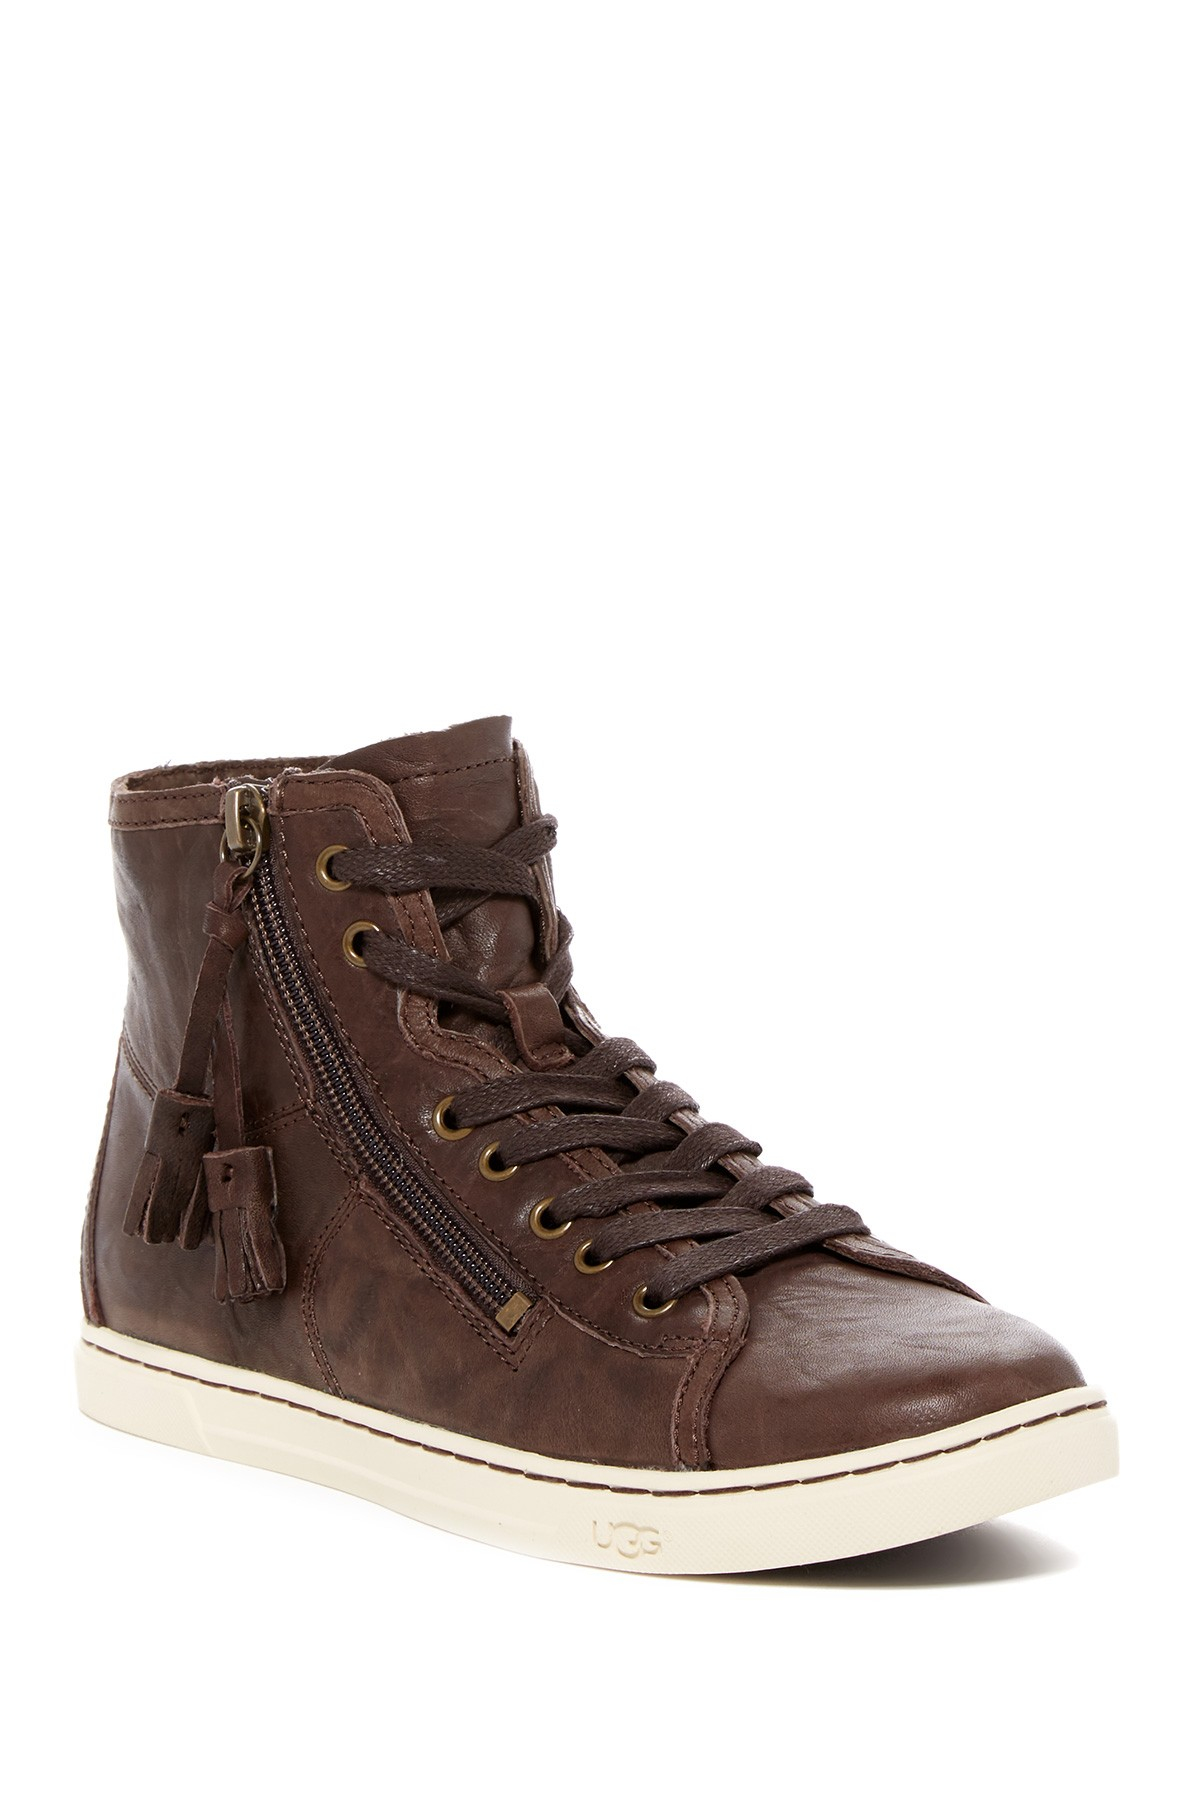 Ugg Sneakers For 28 Images Ugg Australia Roxford Tf